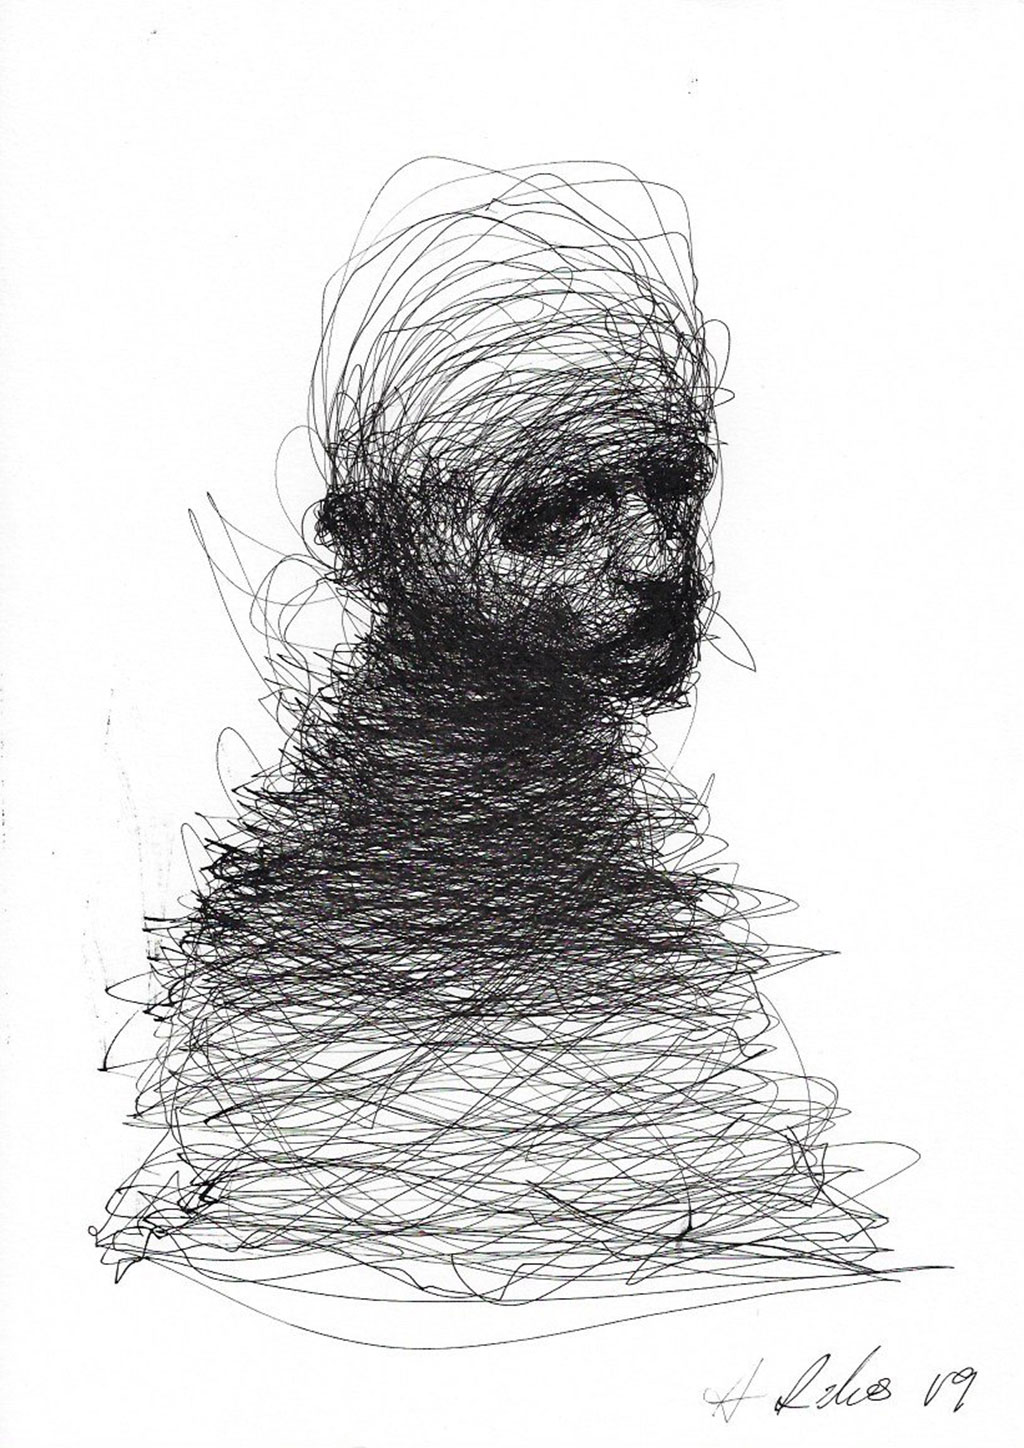 Ballpoint pen drawing of the profile of a figure of a man